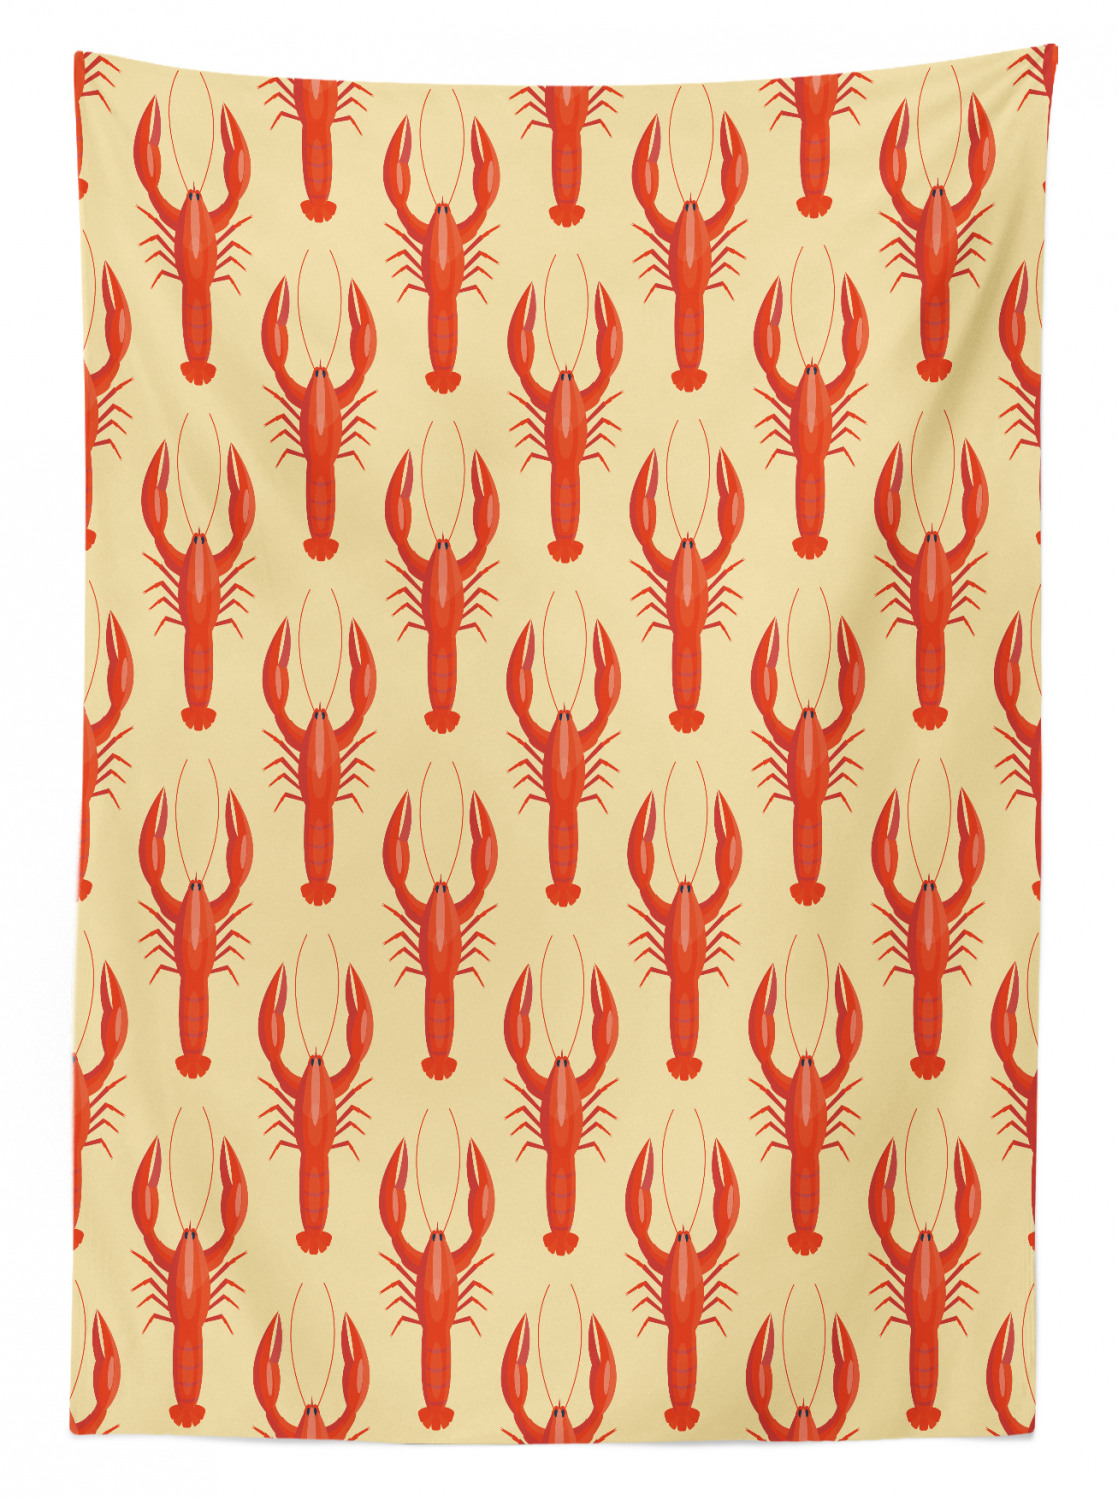 Lobster-Outdoor-Picnic-Tablecloth-in-3-Sizes-Washable-Waterproof thumbnail 24